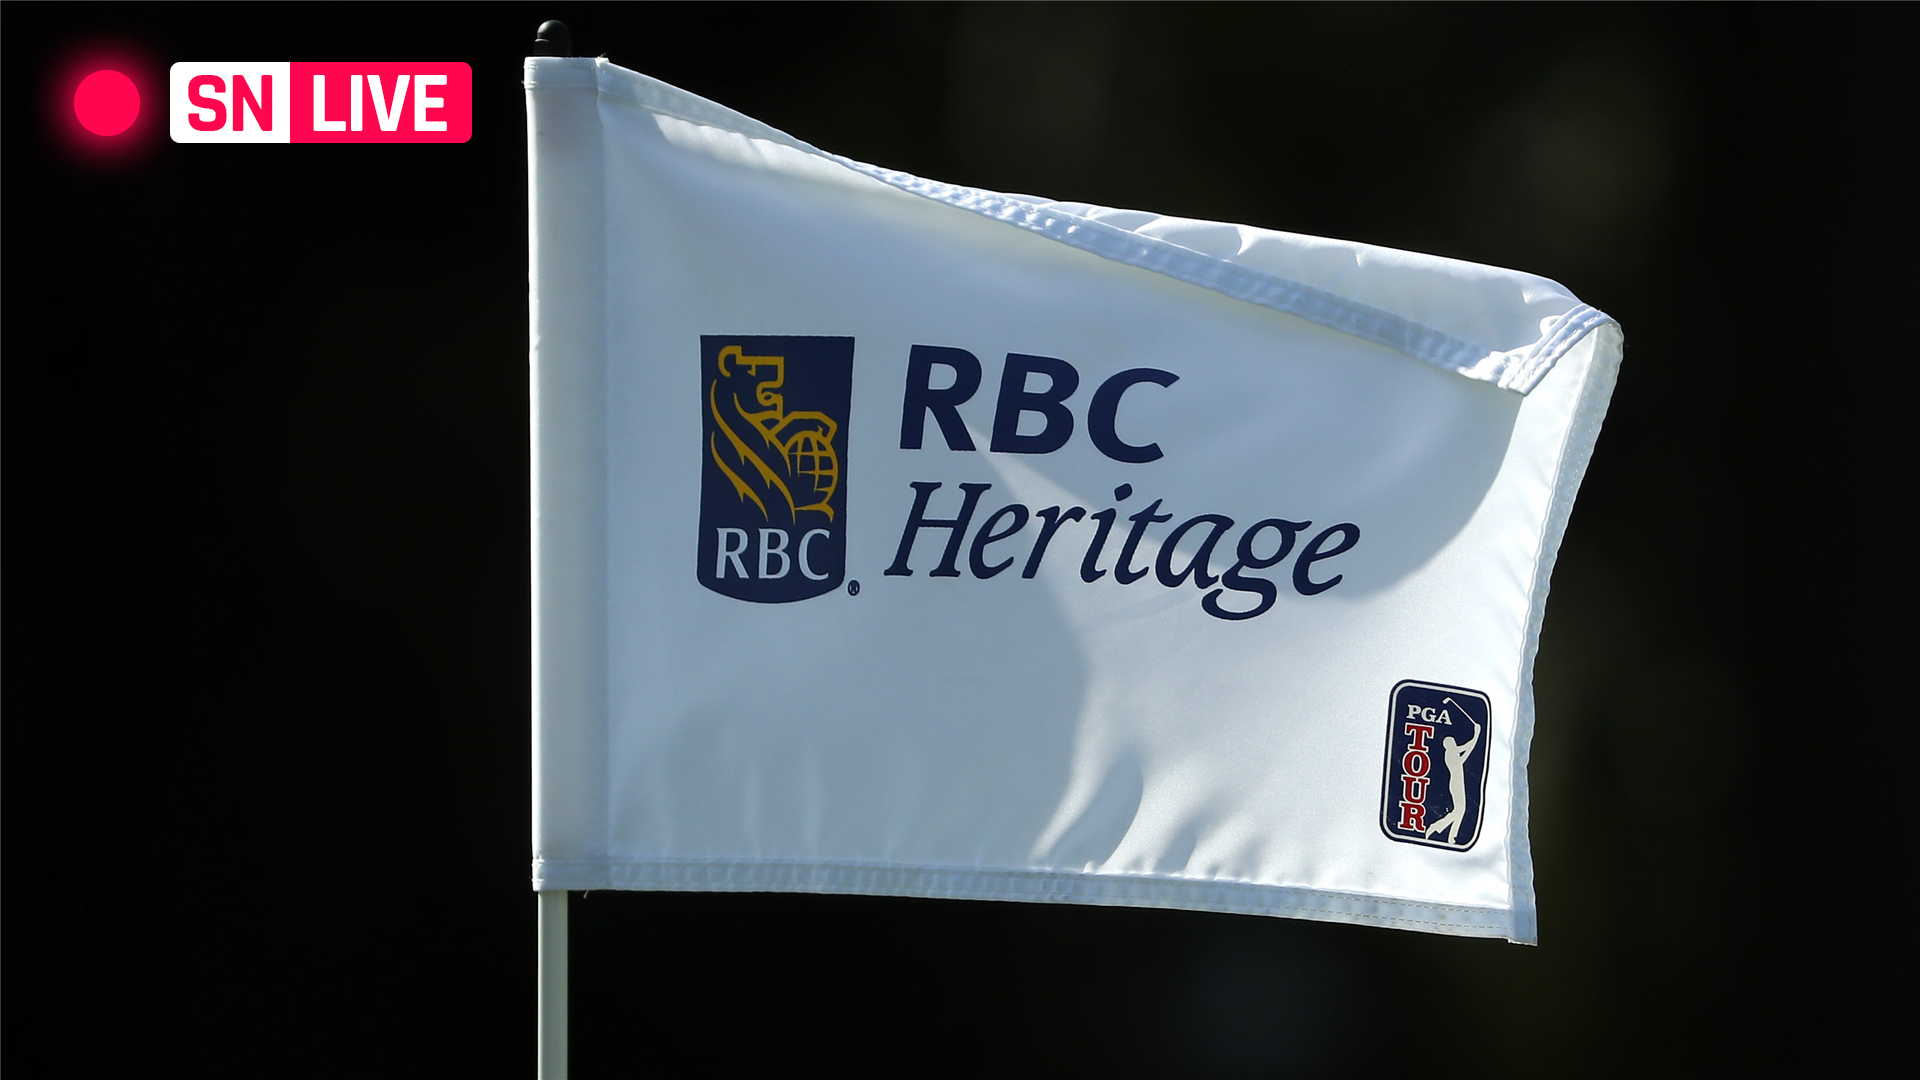 RBC Heritage leaderboard: Live scores, results from Friday's Round 2 play